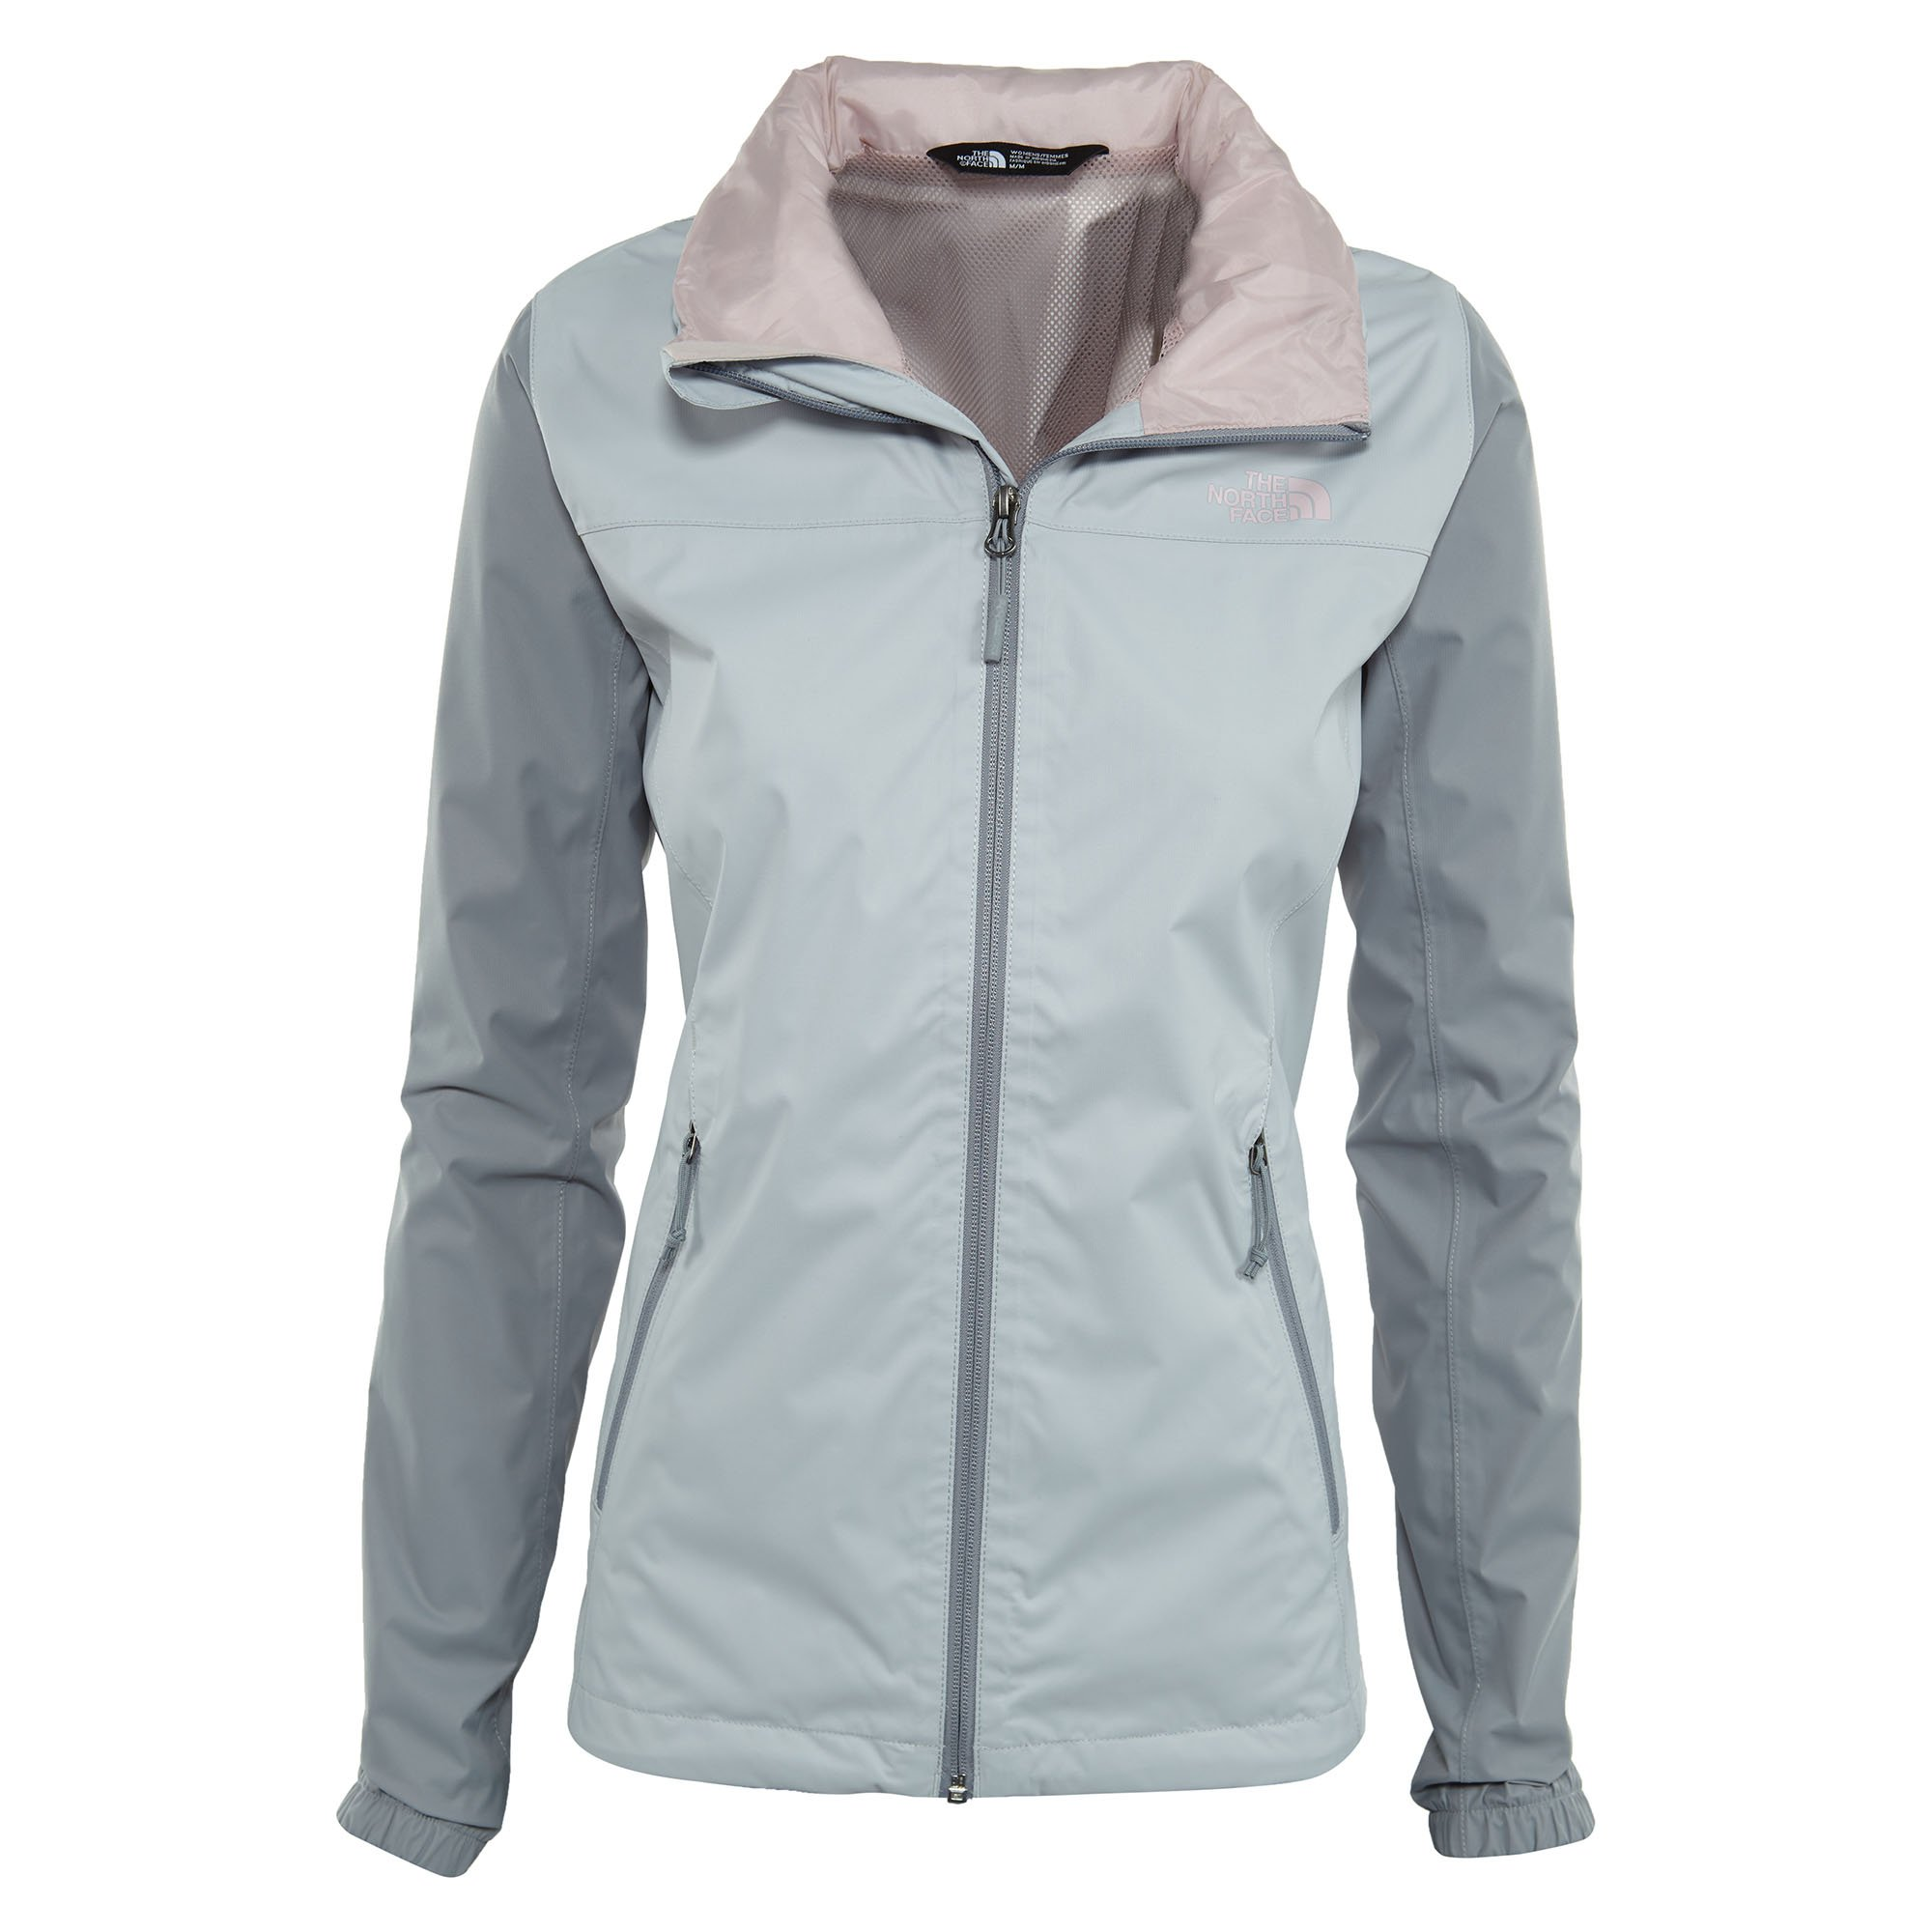 The North Face Resolve Plus Jacket Womens Style: CUS0-W6X Size: XL by The North Face